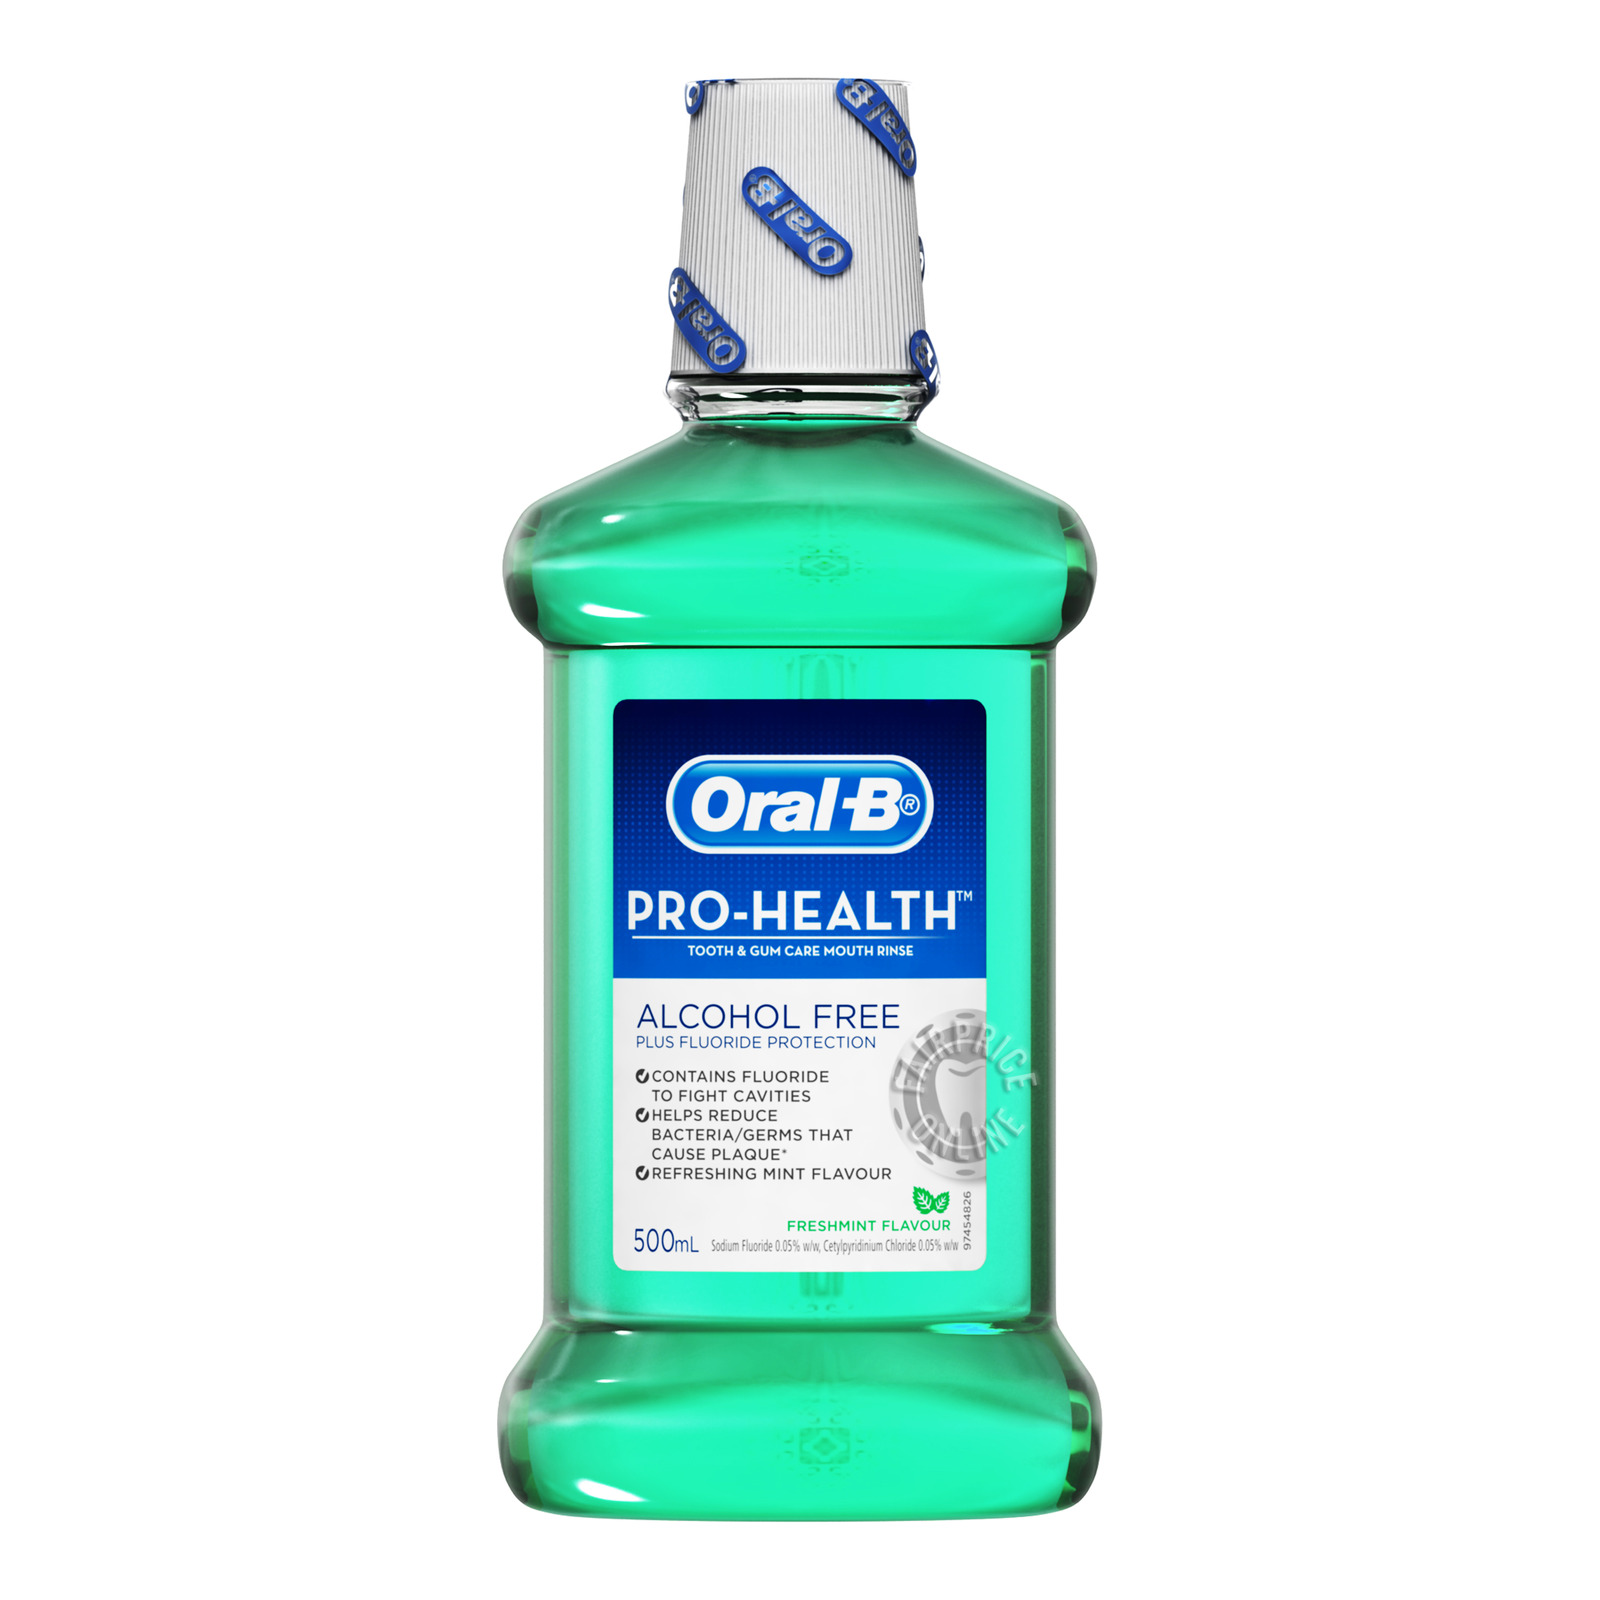 Oral-B Pro-Health Mouth Rinse - Fresh Mint